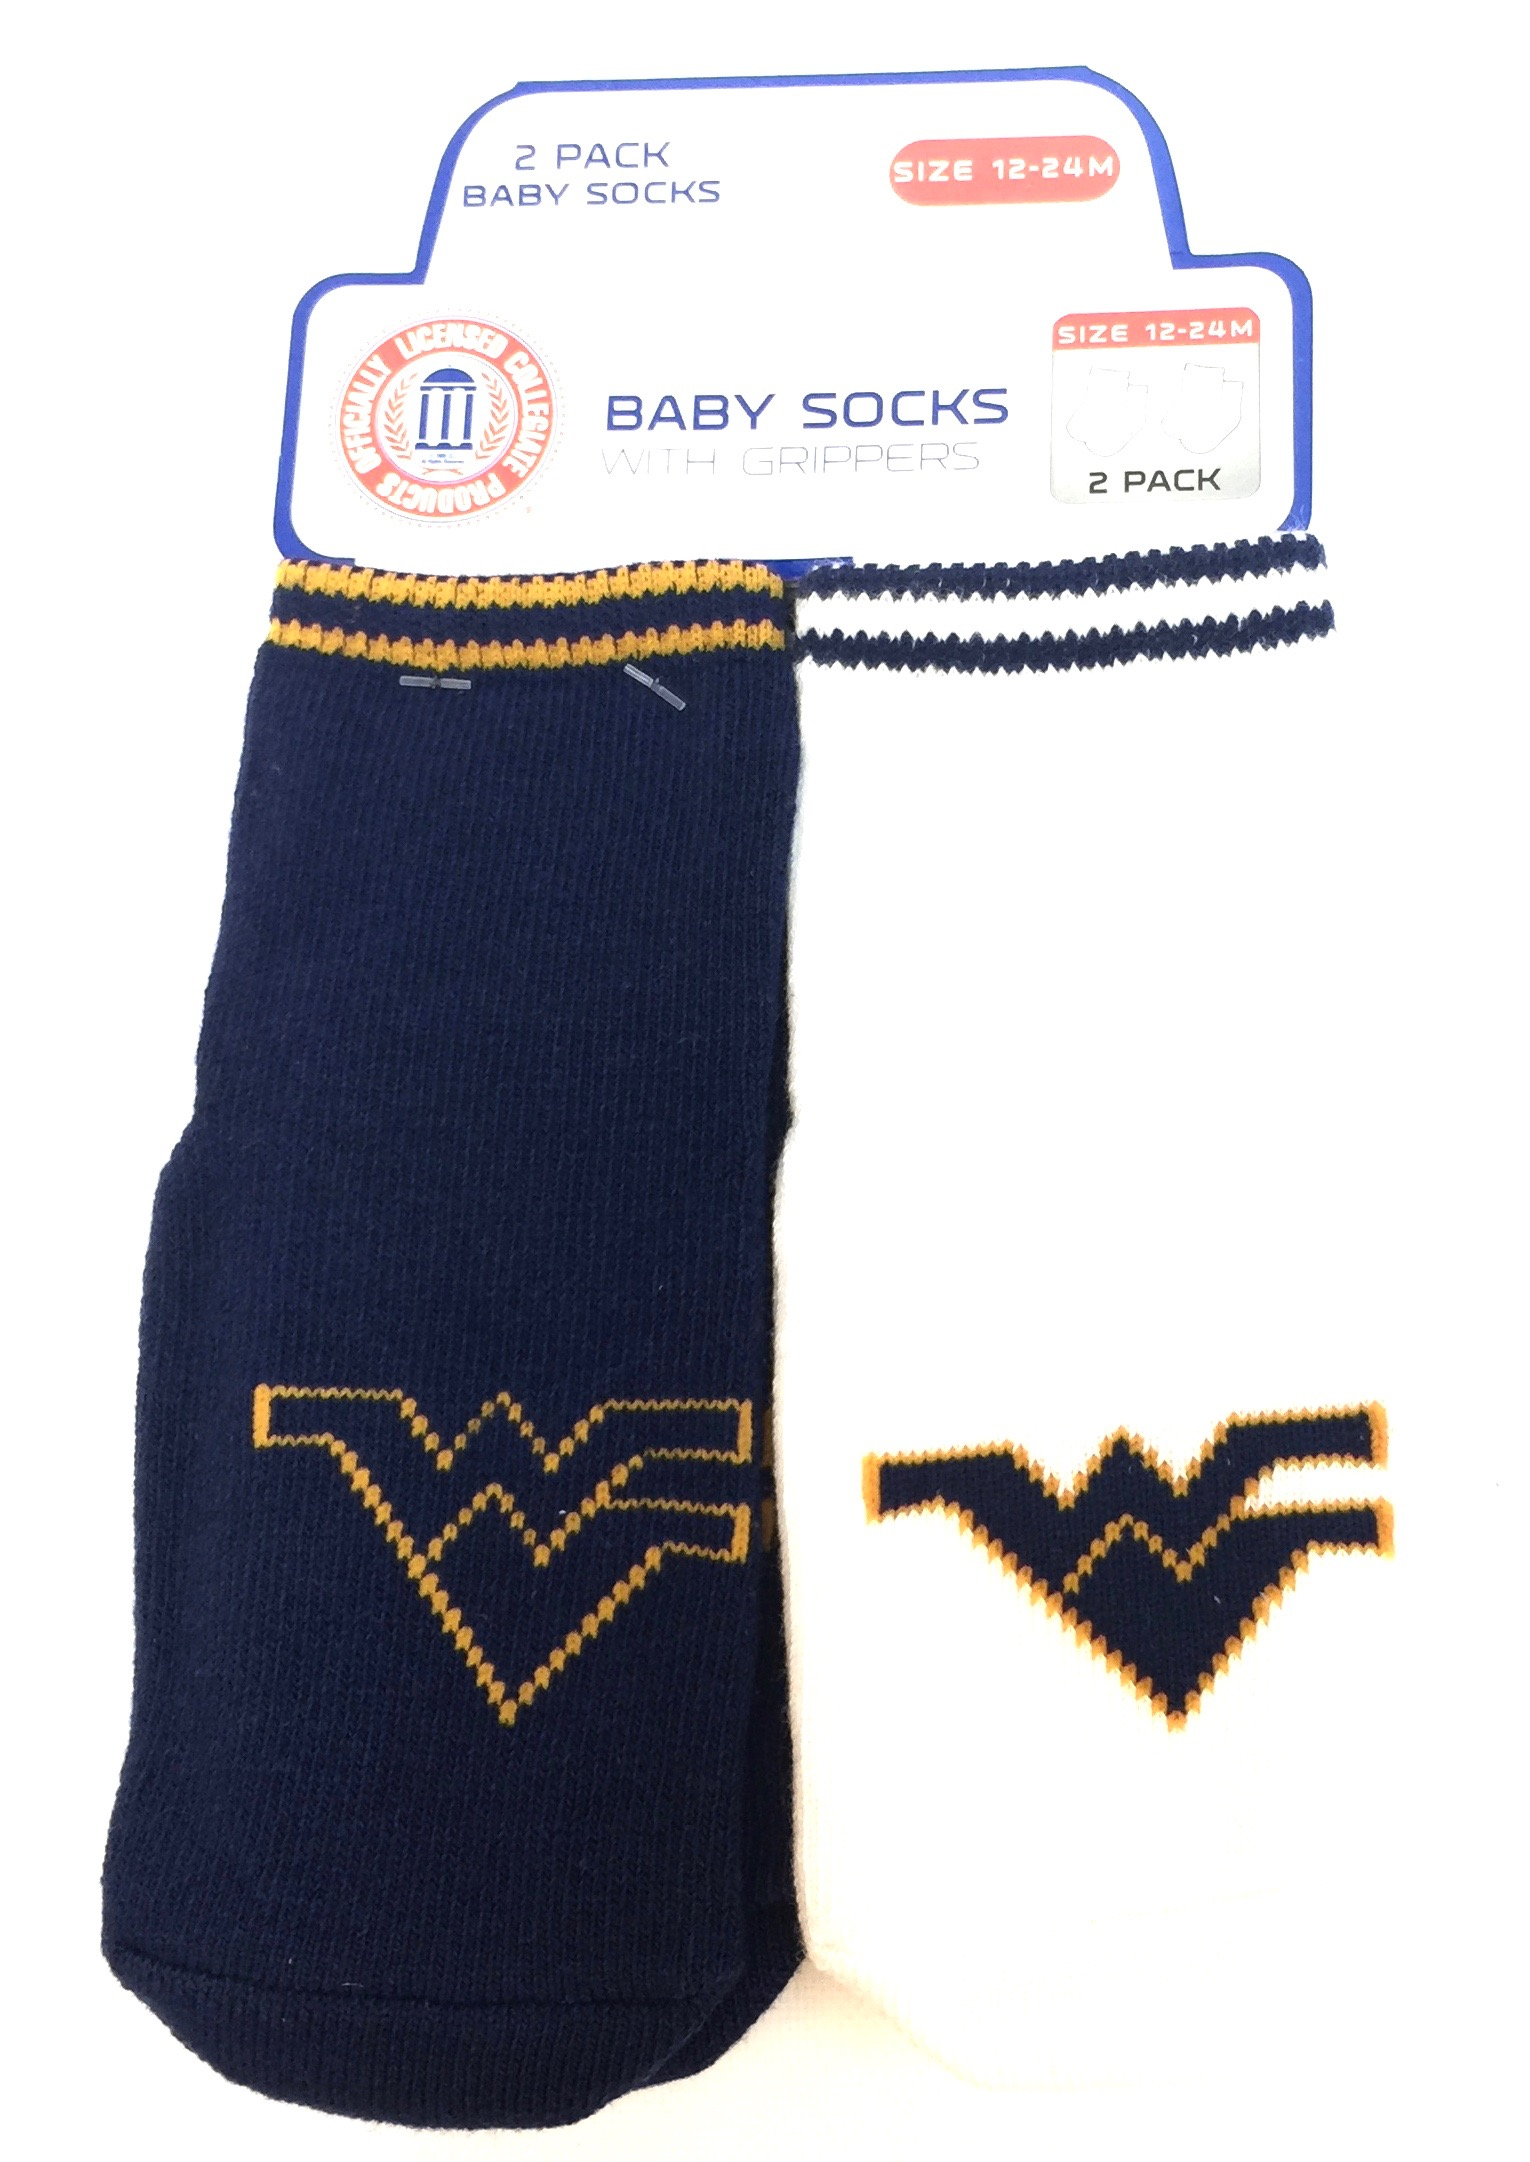 Carded 2 Pk Baby Socks w/Grippers - Virginia